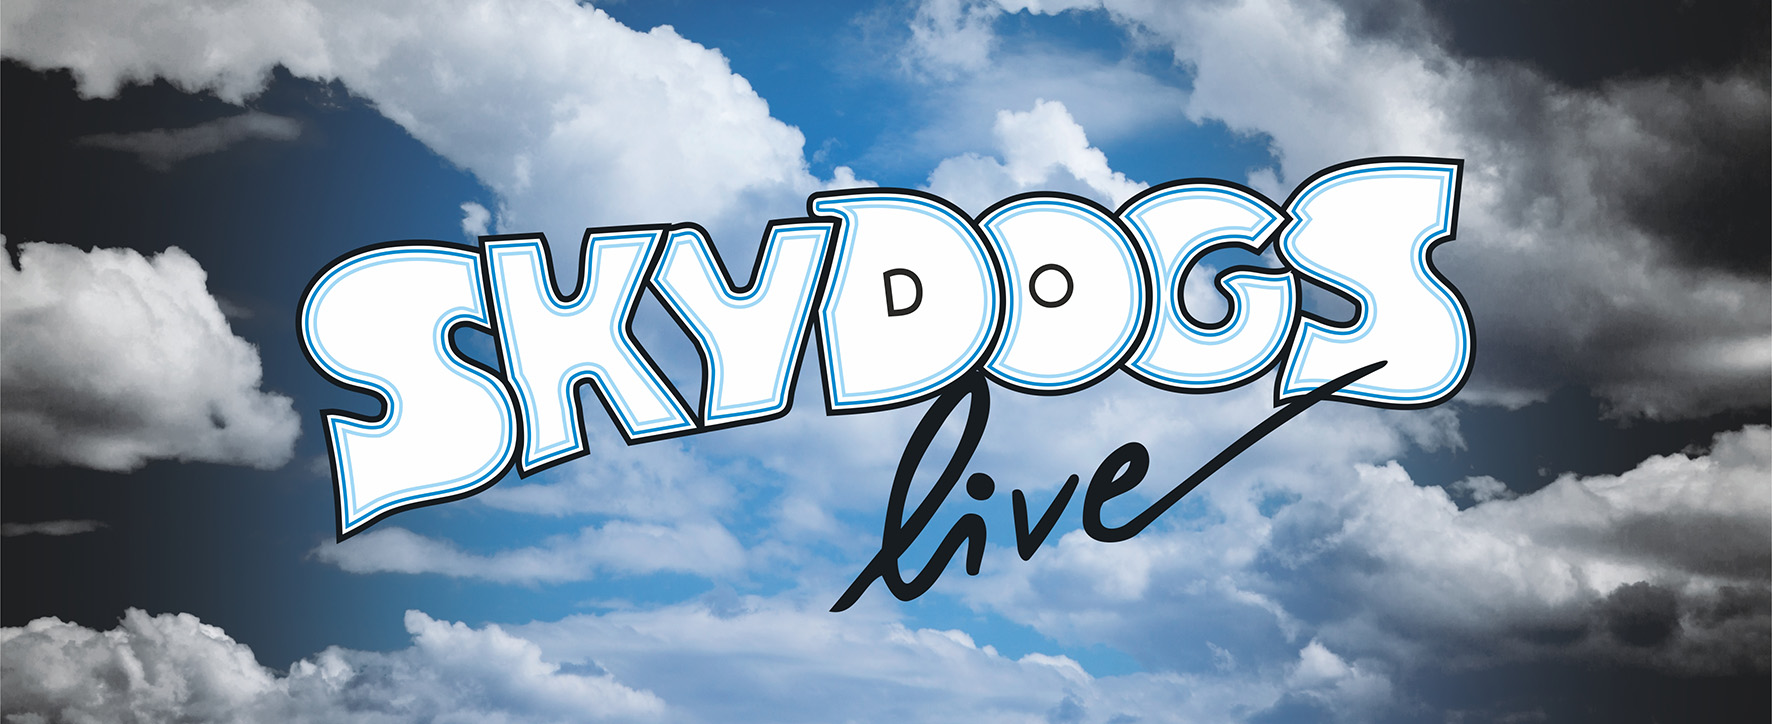 skydogs_web